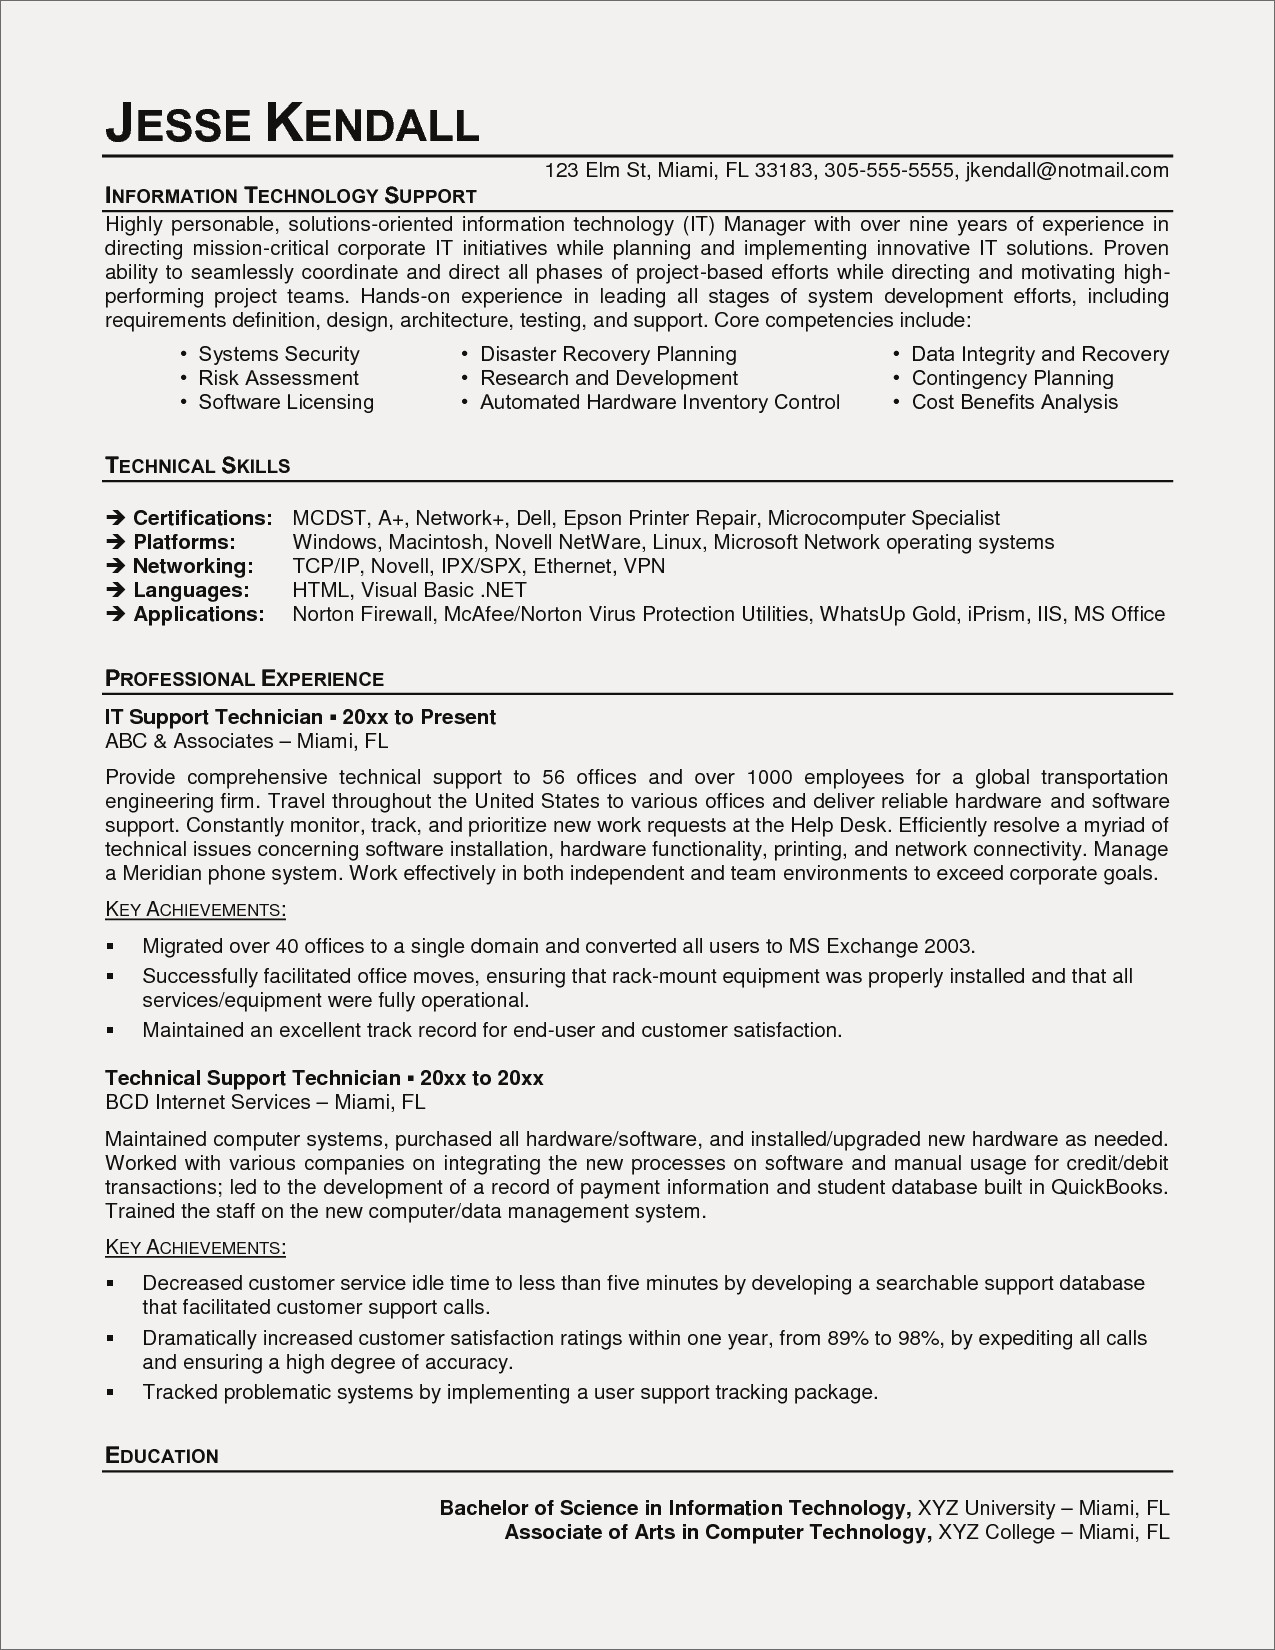 automotive skills for resume Collection-Technician Resume Examples New Auto Mechanic Resume American Resume Sample New Student Resume 0d 14-d